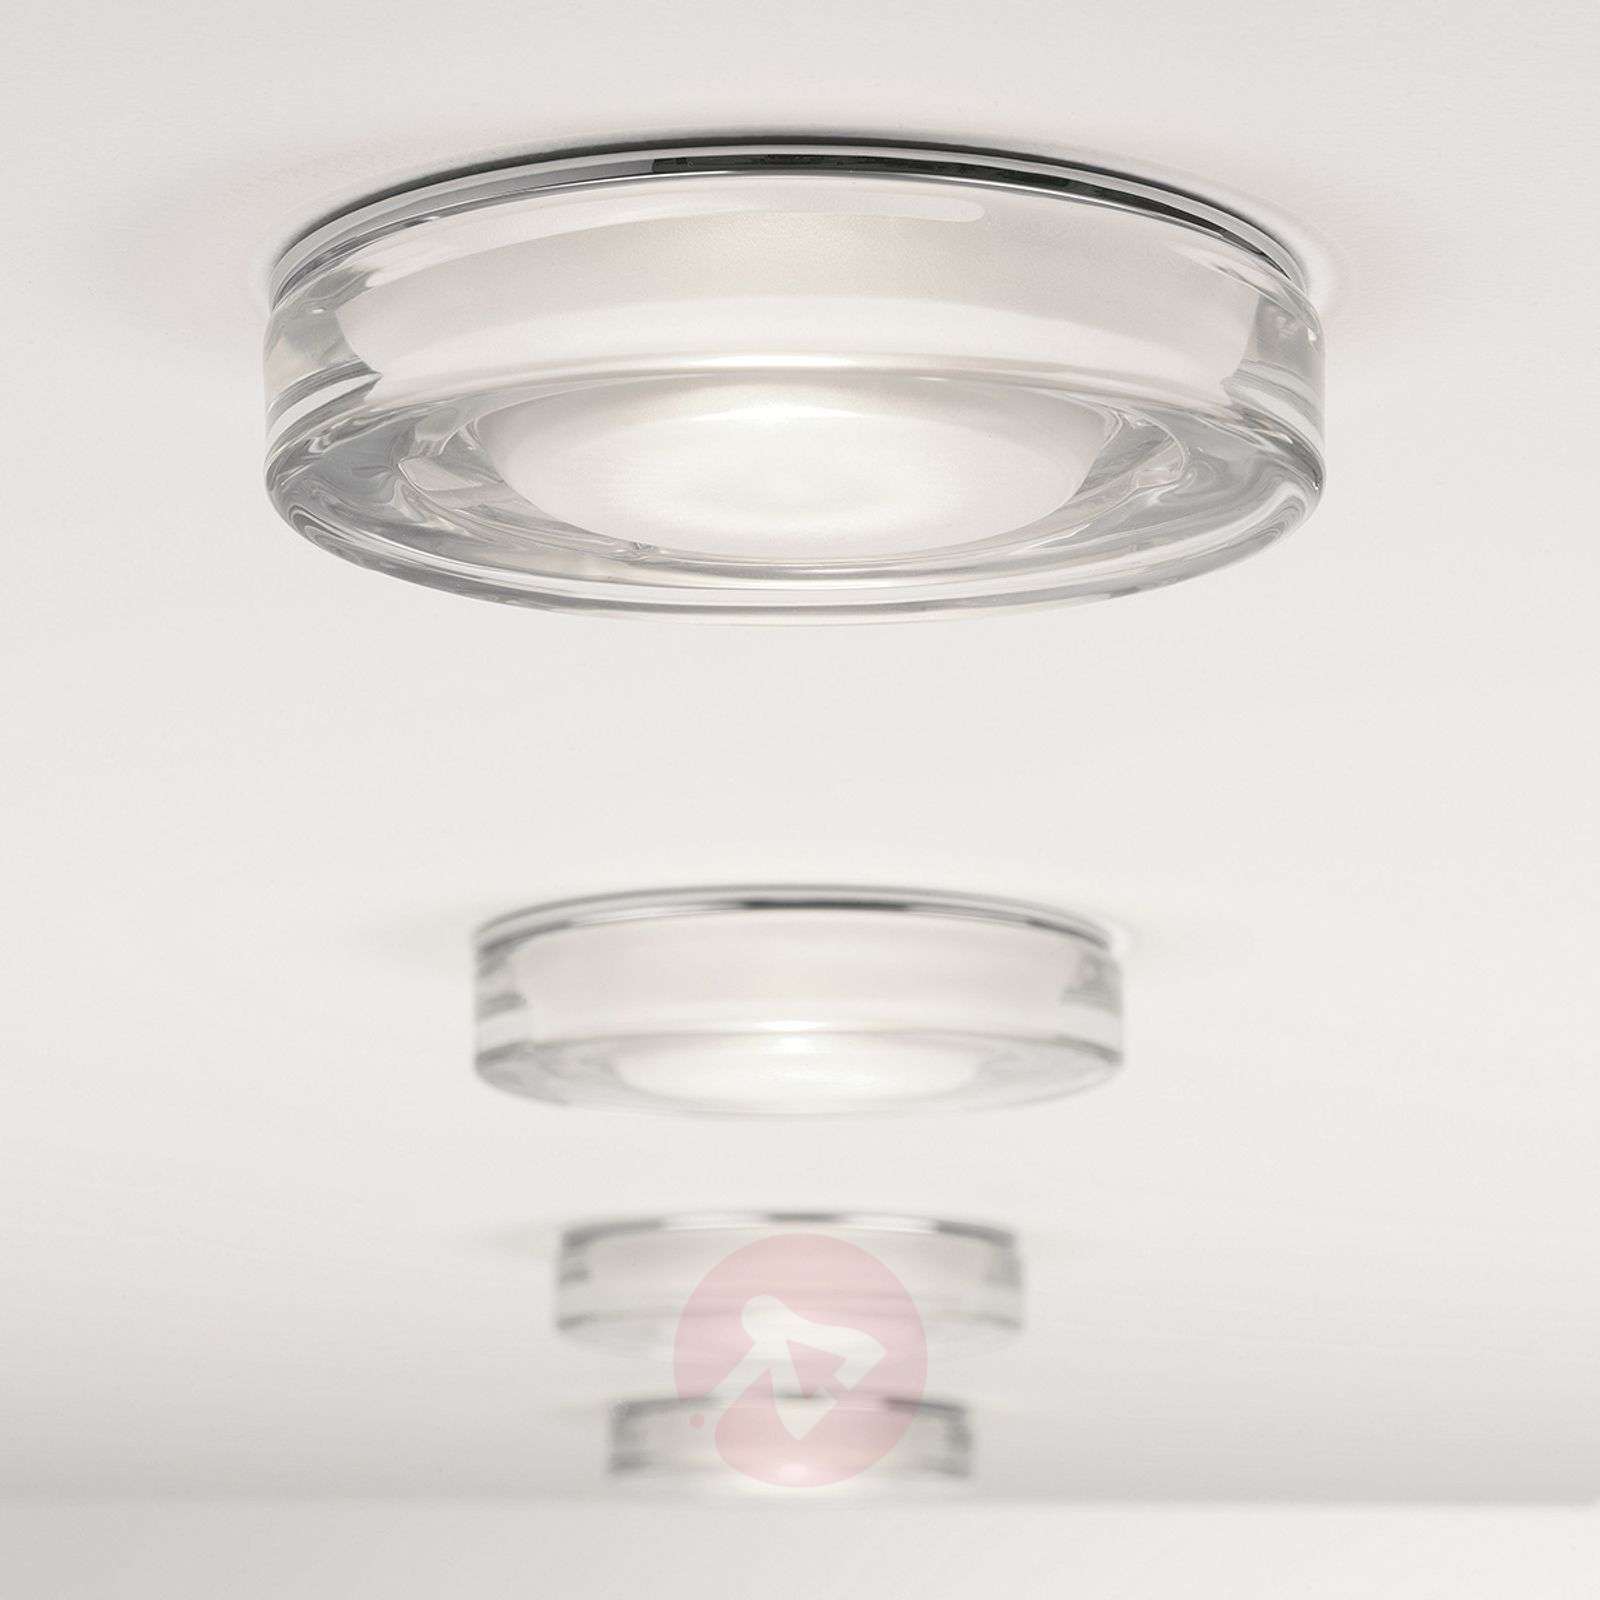 Vancouver Round Built-In Ceiling Light Decorative-1020099-02